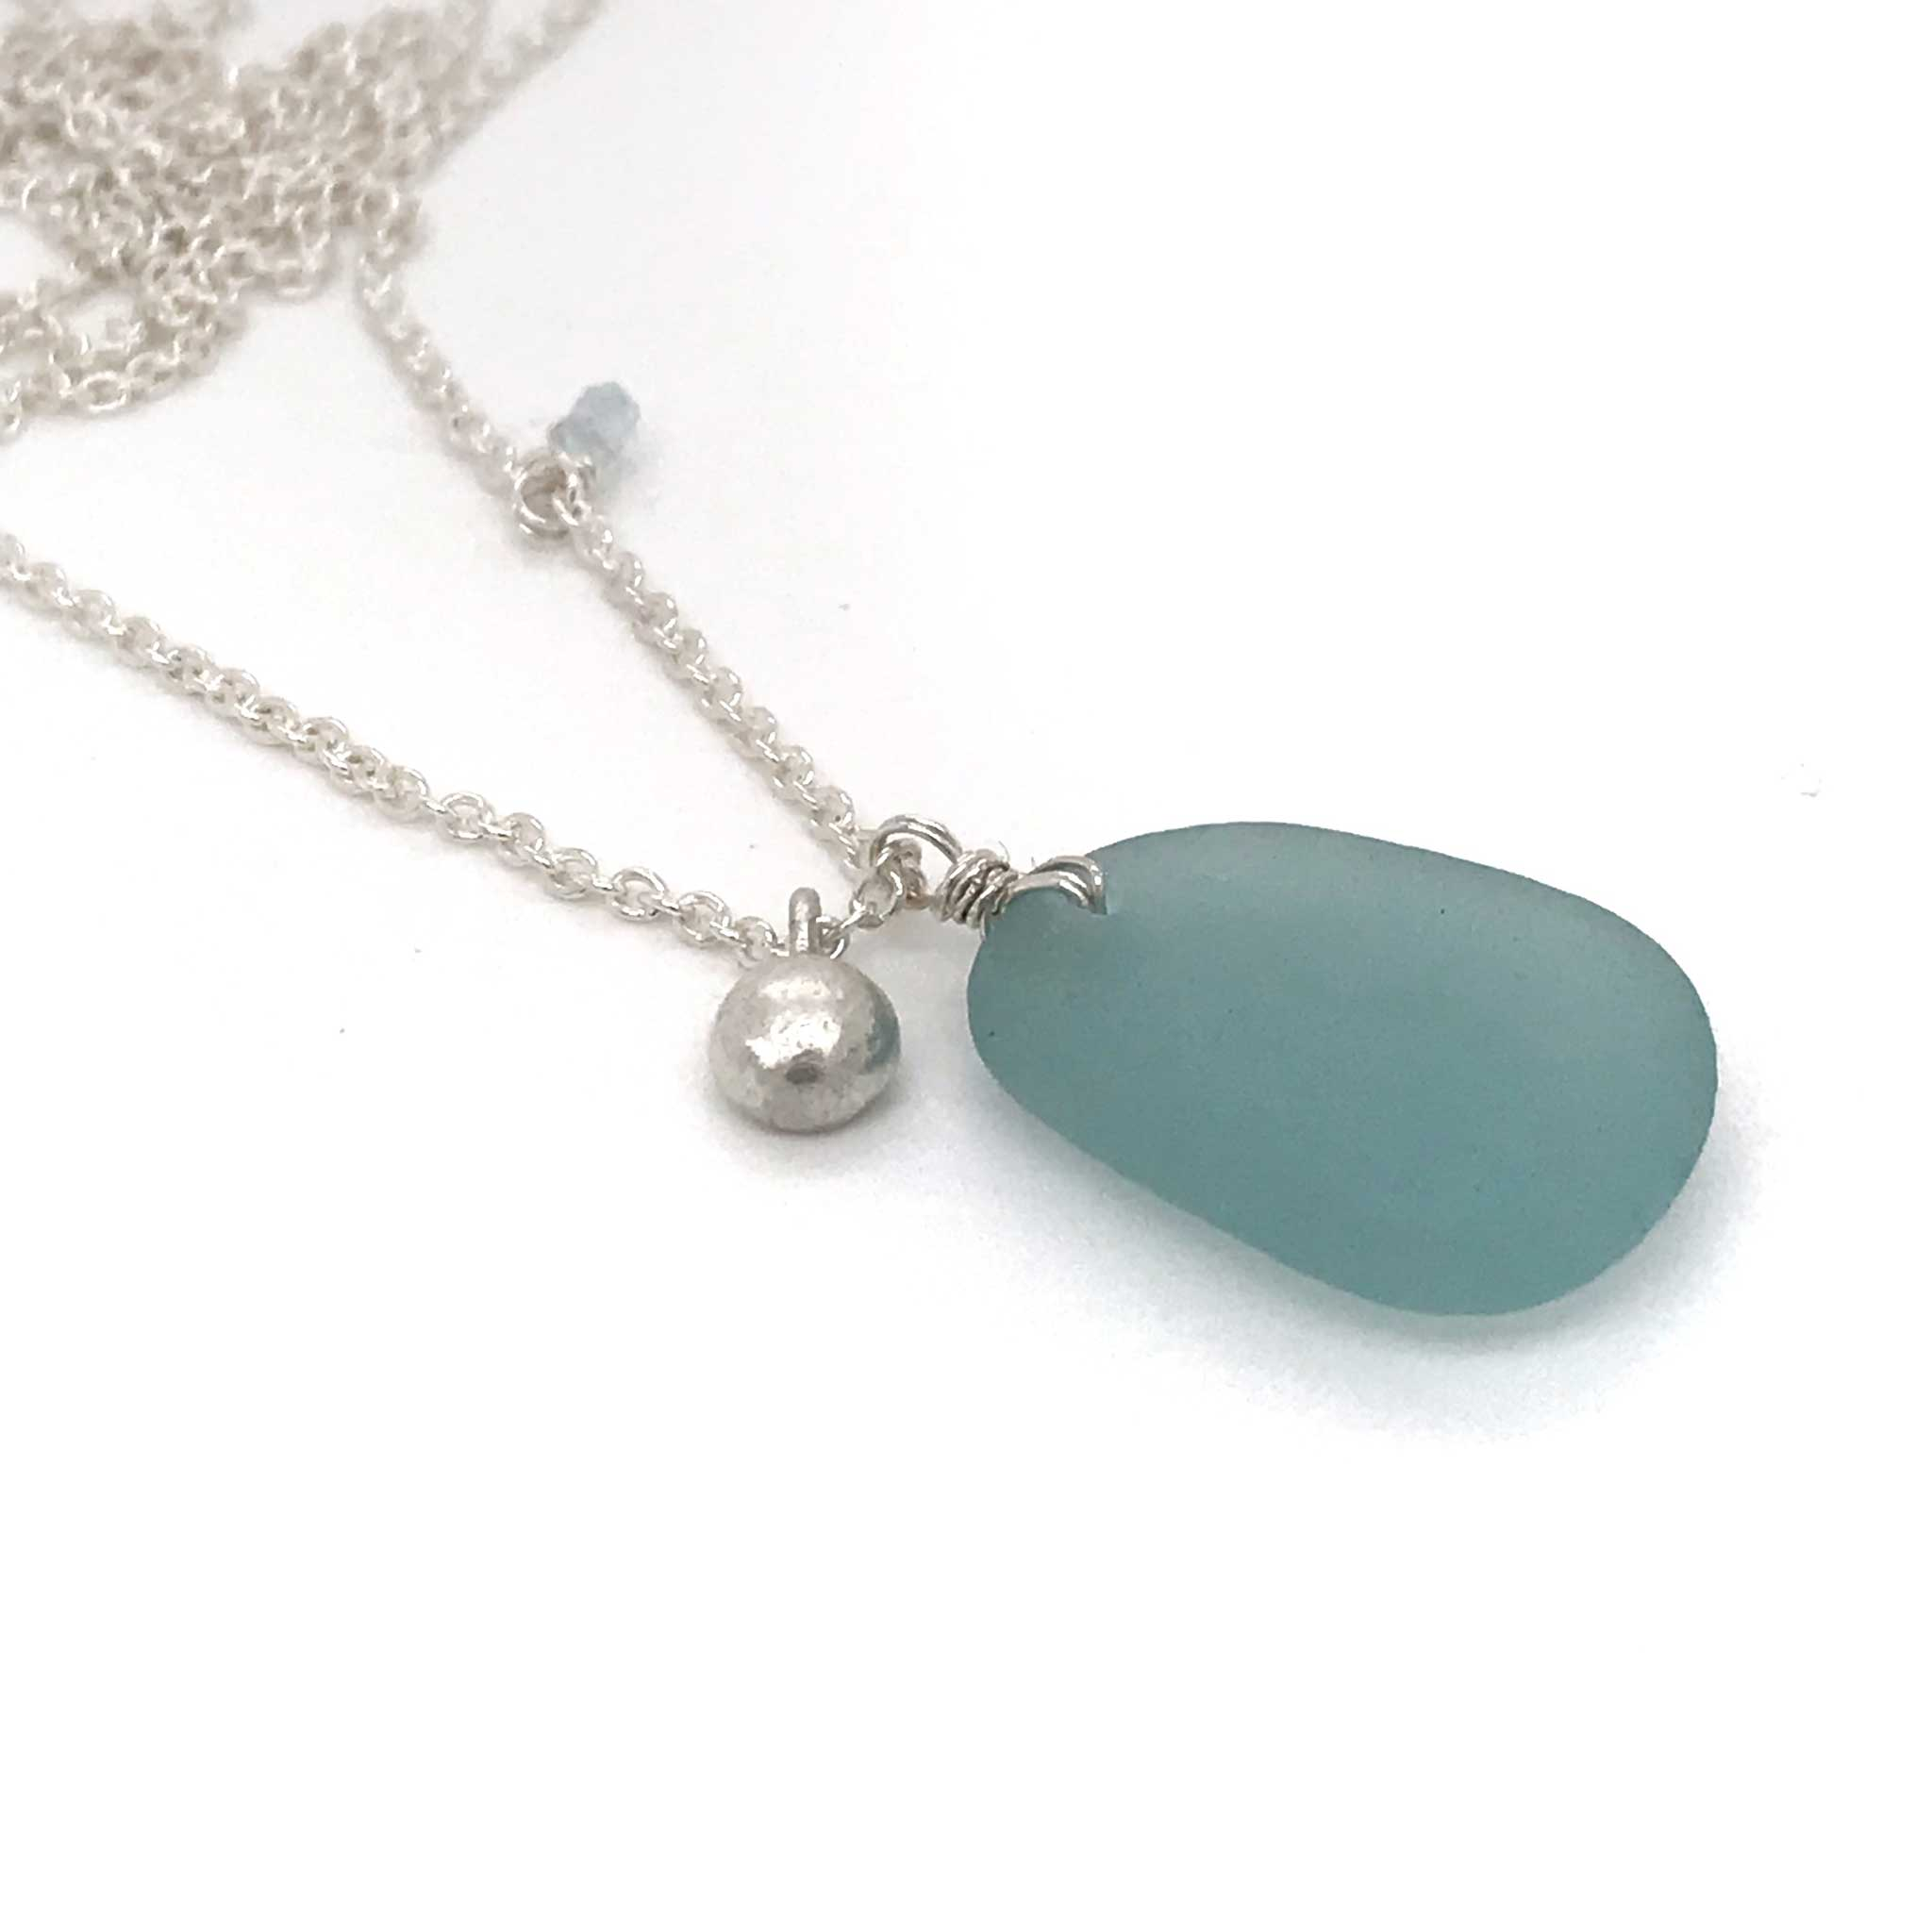 long necklace with aqua sea glass and silver pebble charm kriket broadhurst jewellery Australia